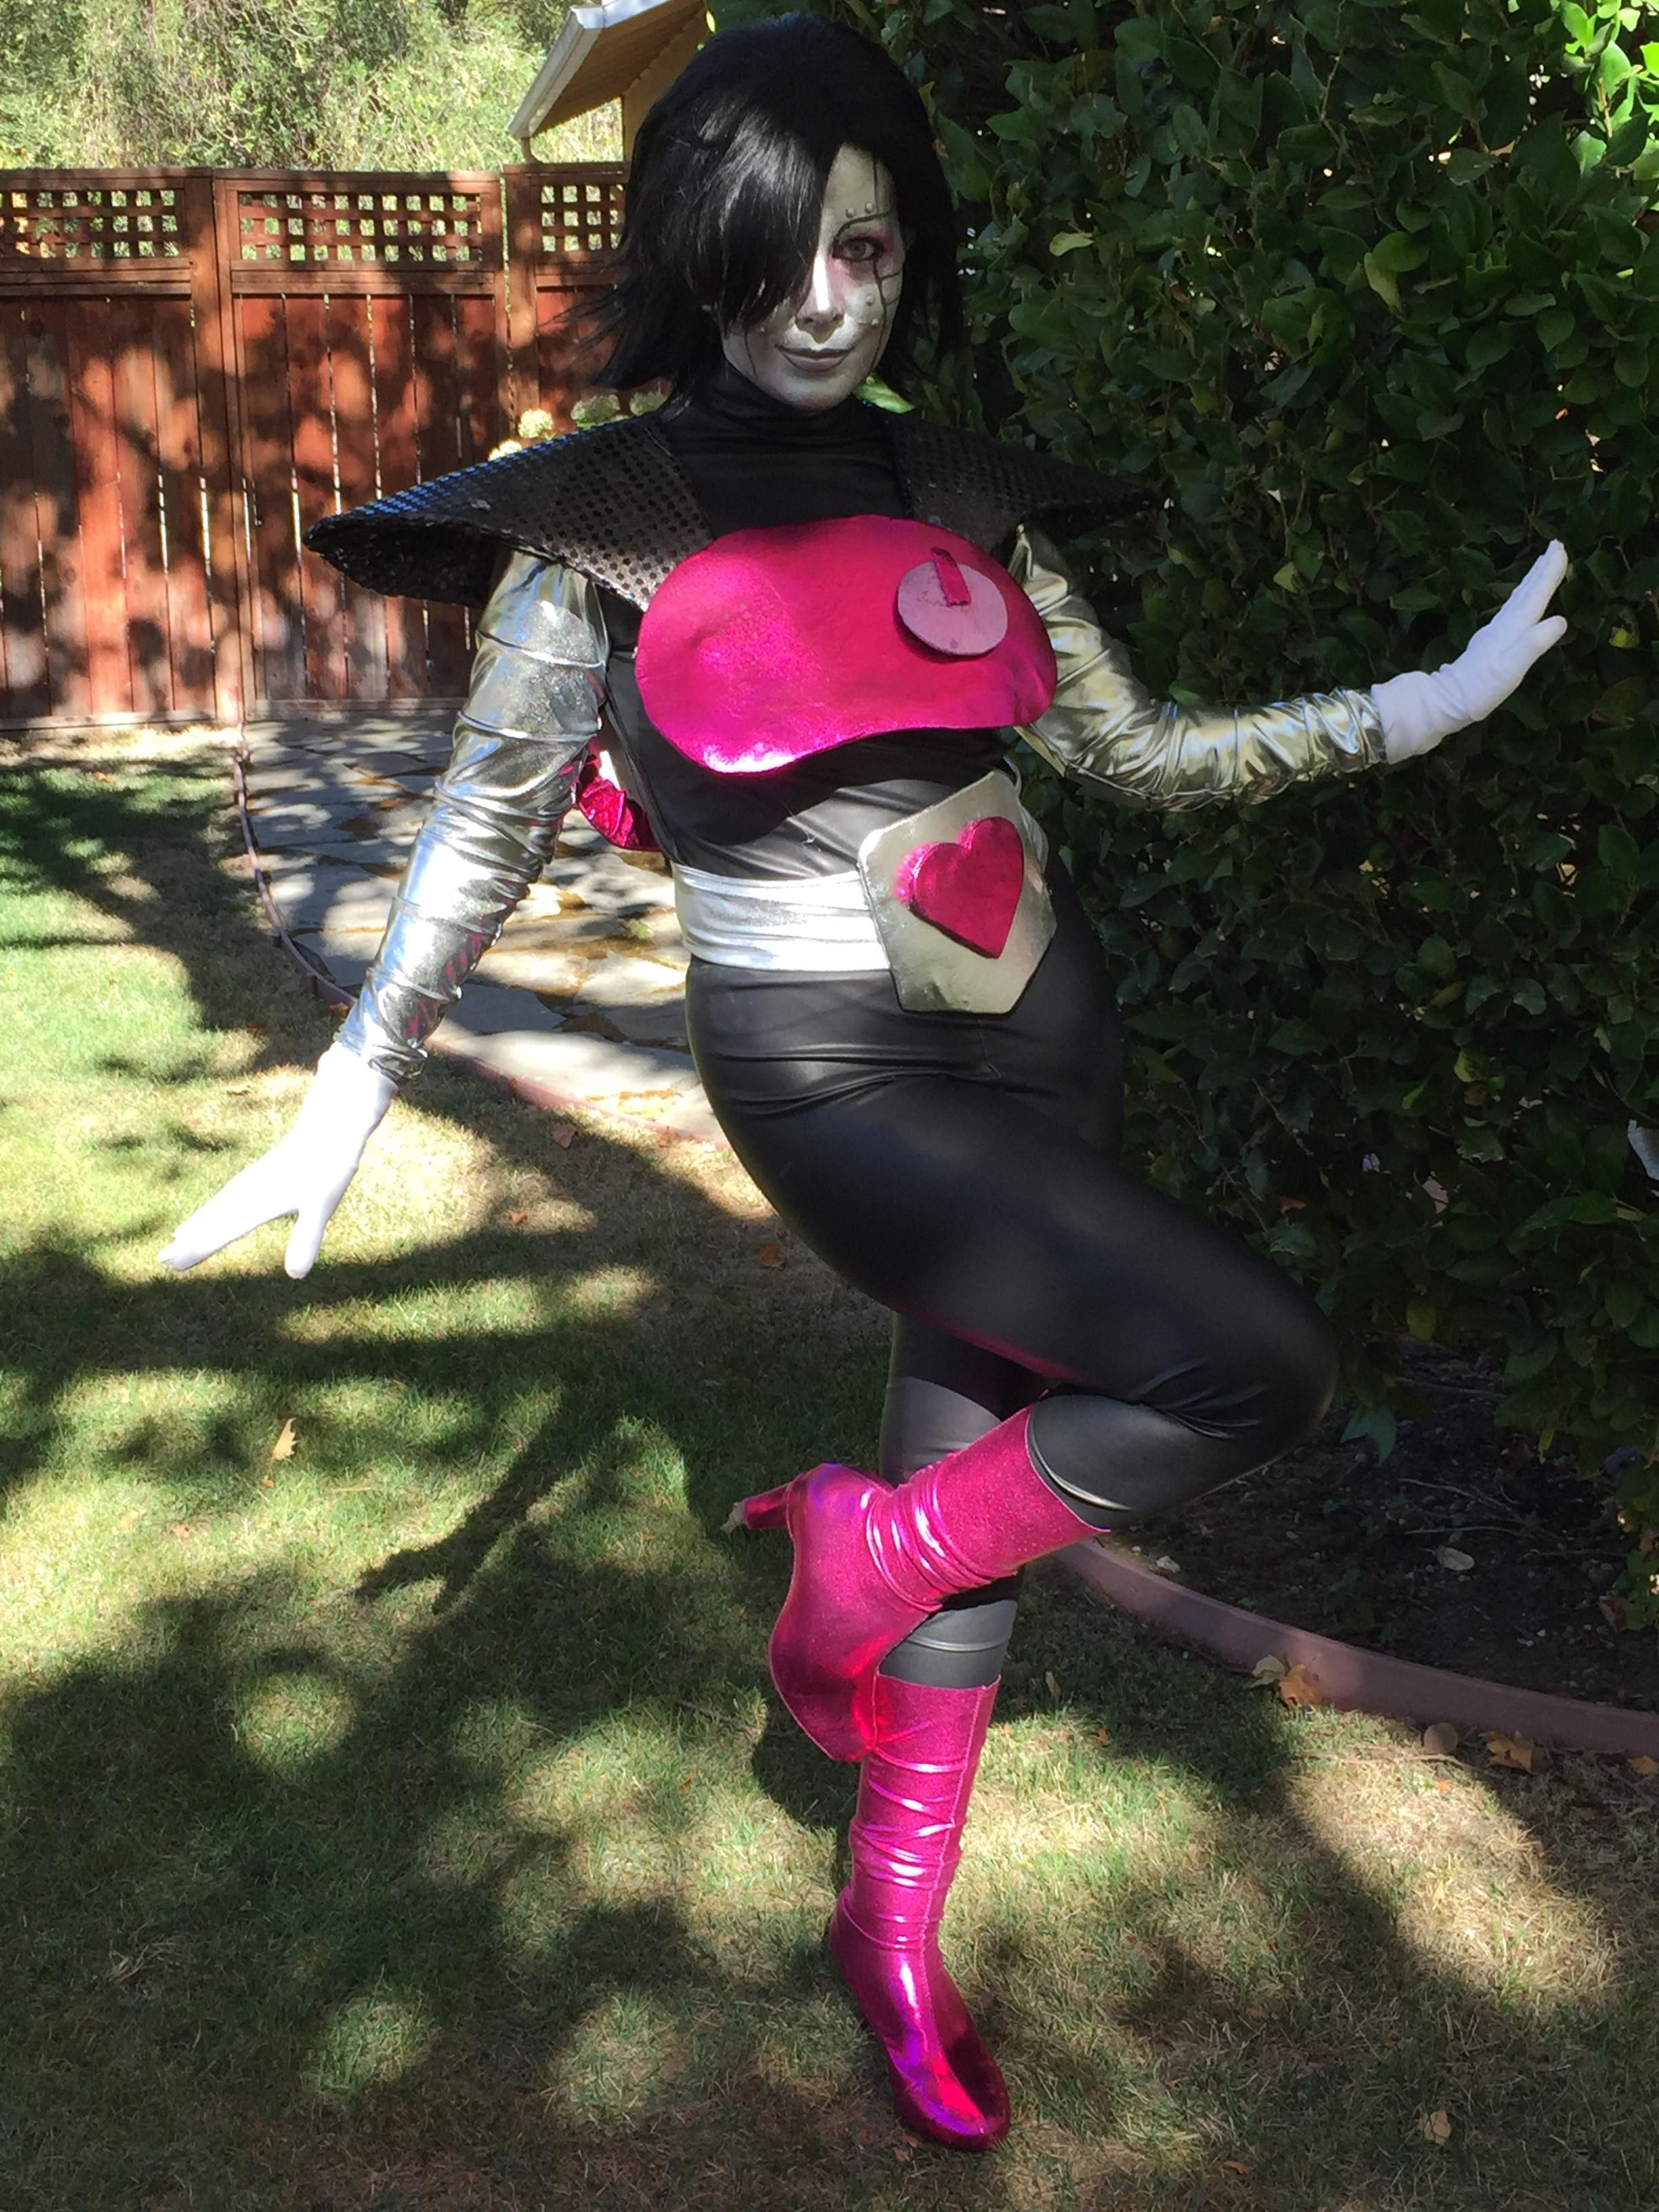 [Self] Mettaton EX (Undertale) cosplay http//bit.ly